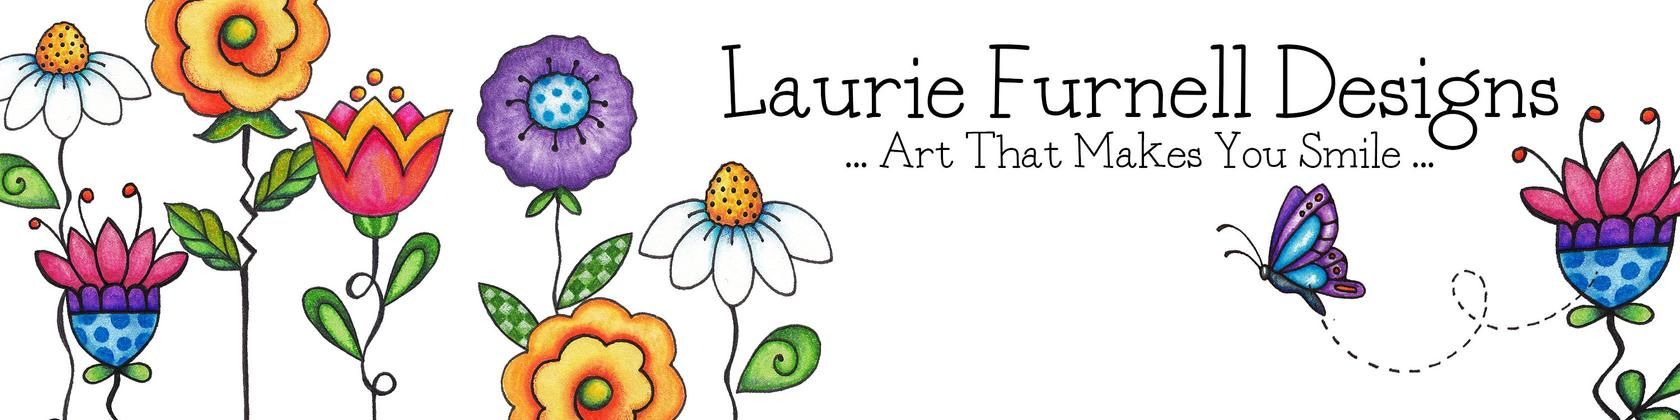 Laurie Furnell Designs by LaurieFurnellDesigns on Etsy.